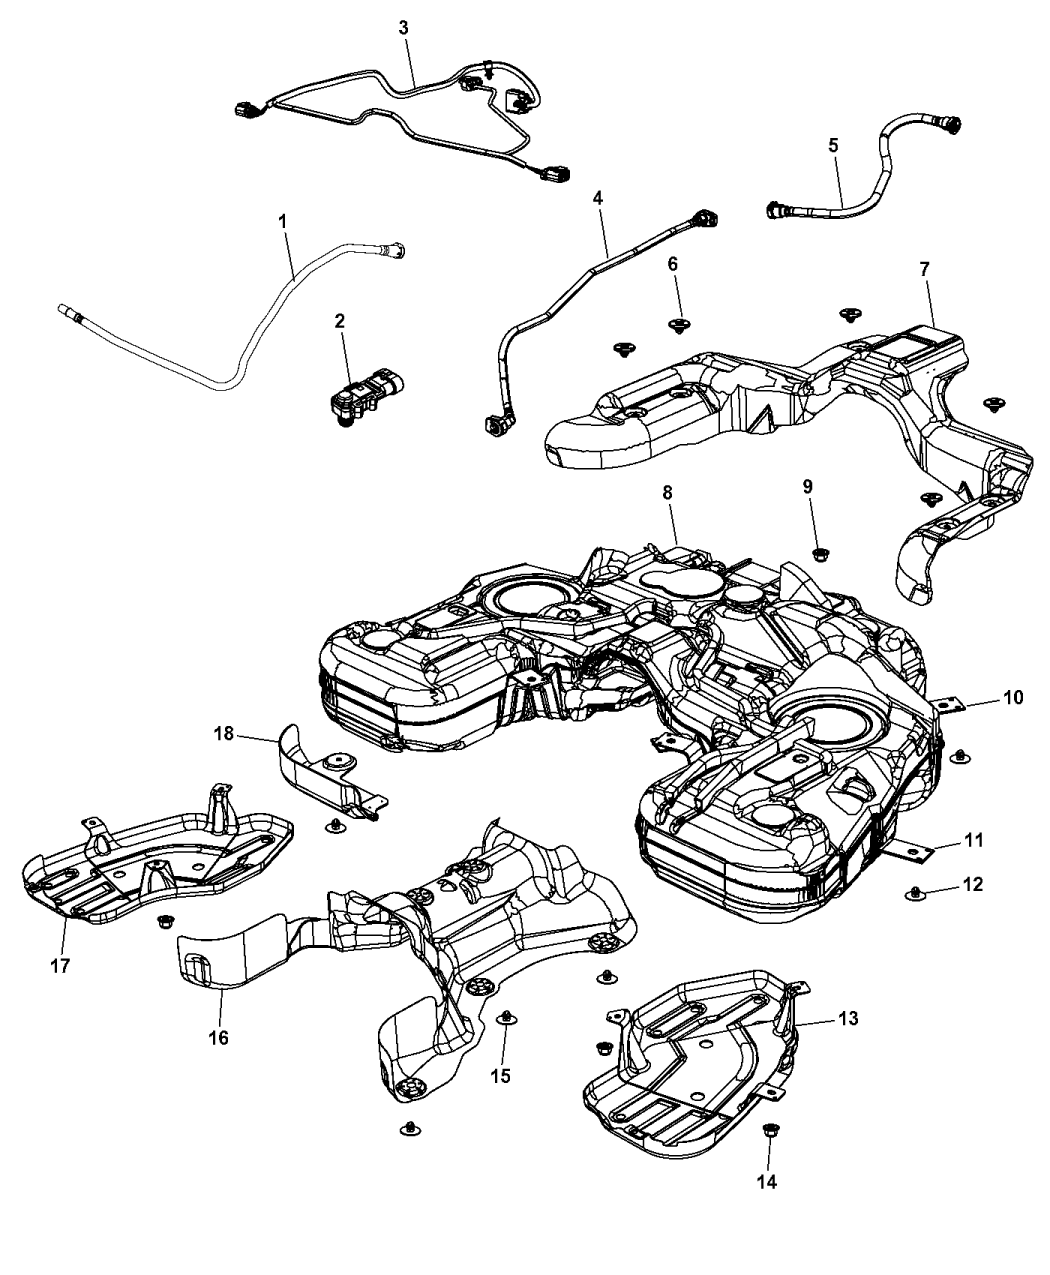 Jeep Cherokee Power Seat Wiring Diagram on lincoln power seat wiring diagram, ford power seat wiring diagram, volvo power seat wiring diagram, dodge power seat wiring diagram,